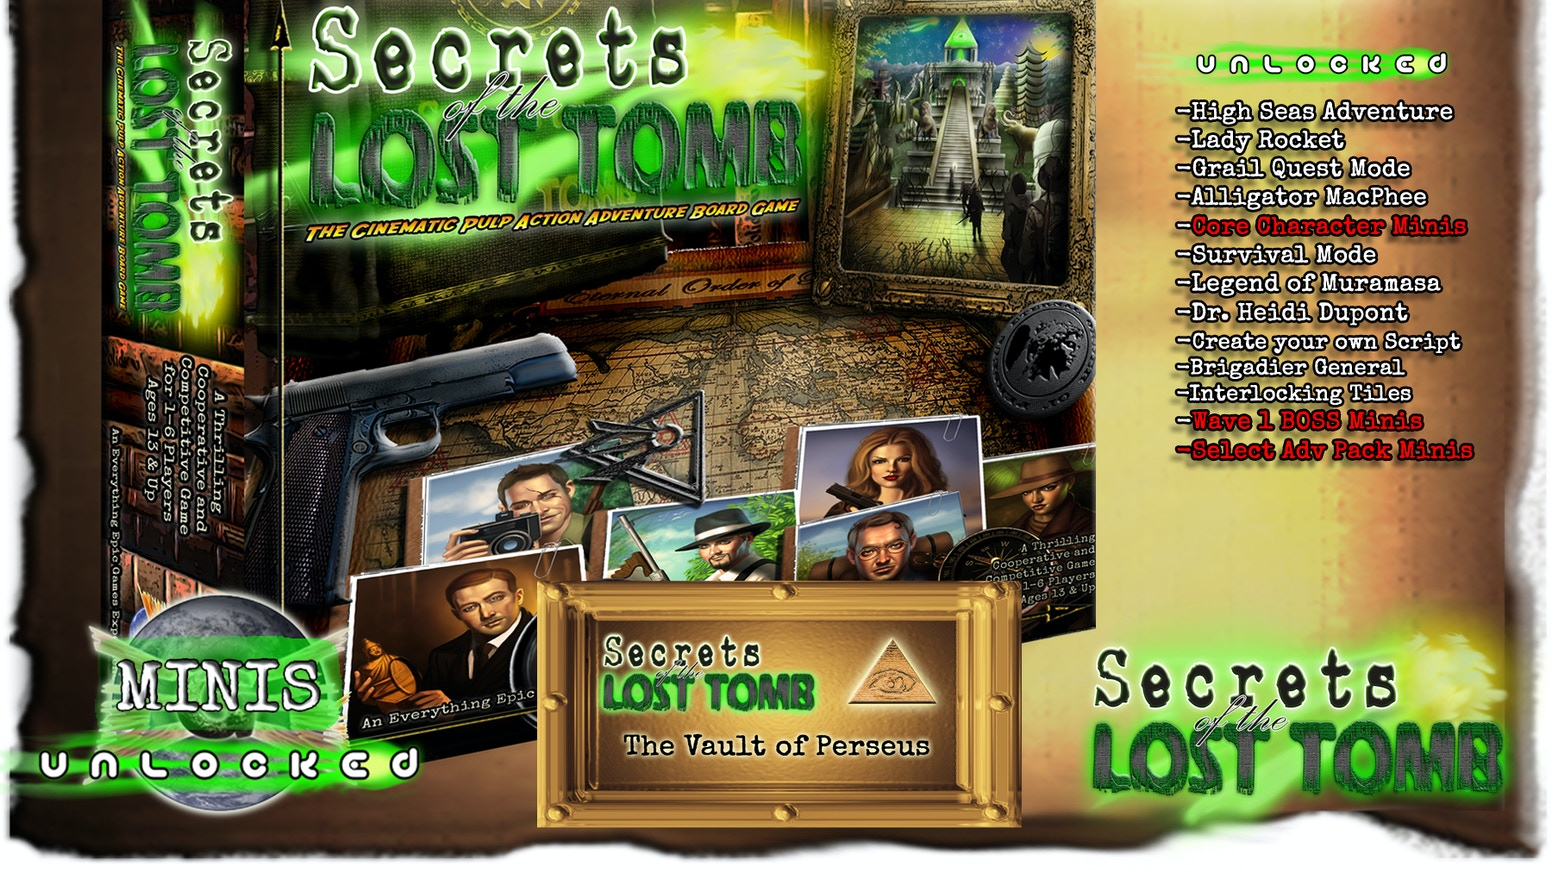 Secrets of the lost tomb by everything epic kickstarter check out our new campaign secrets of the lost station on kickstarter now biocorpaavc Images